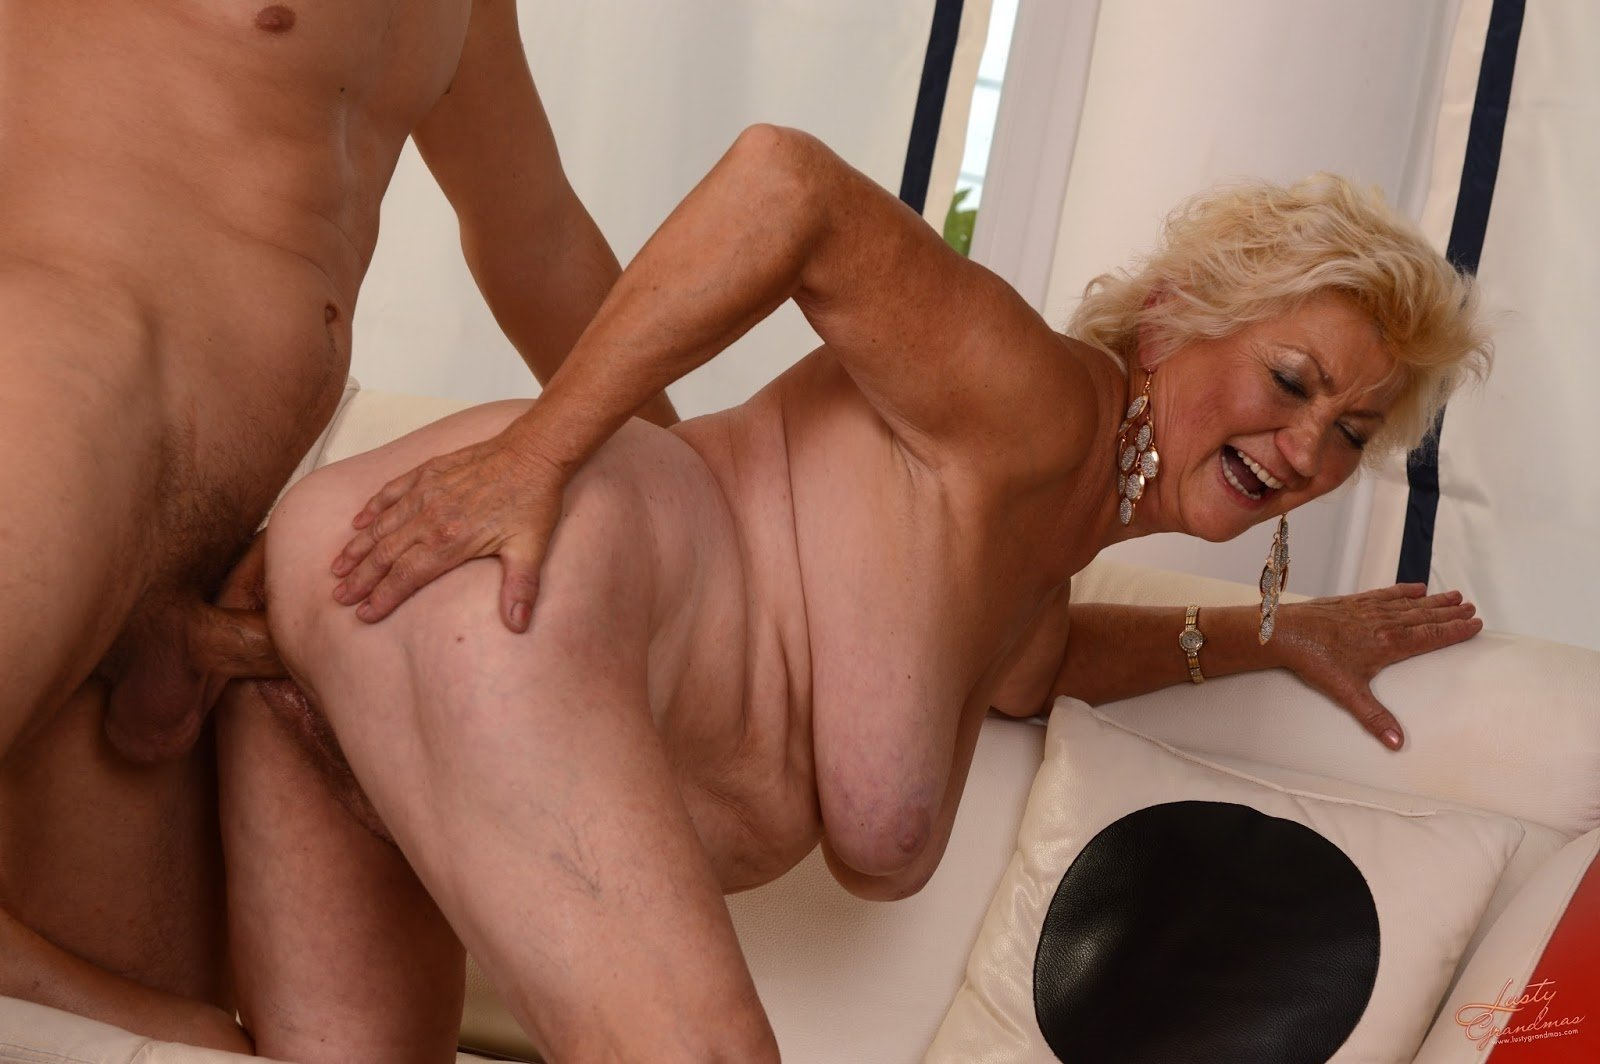 Bare old woman porn scene